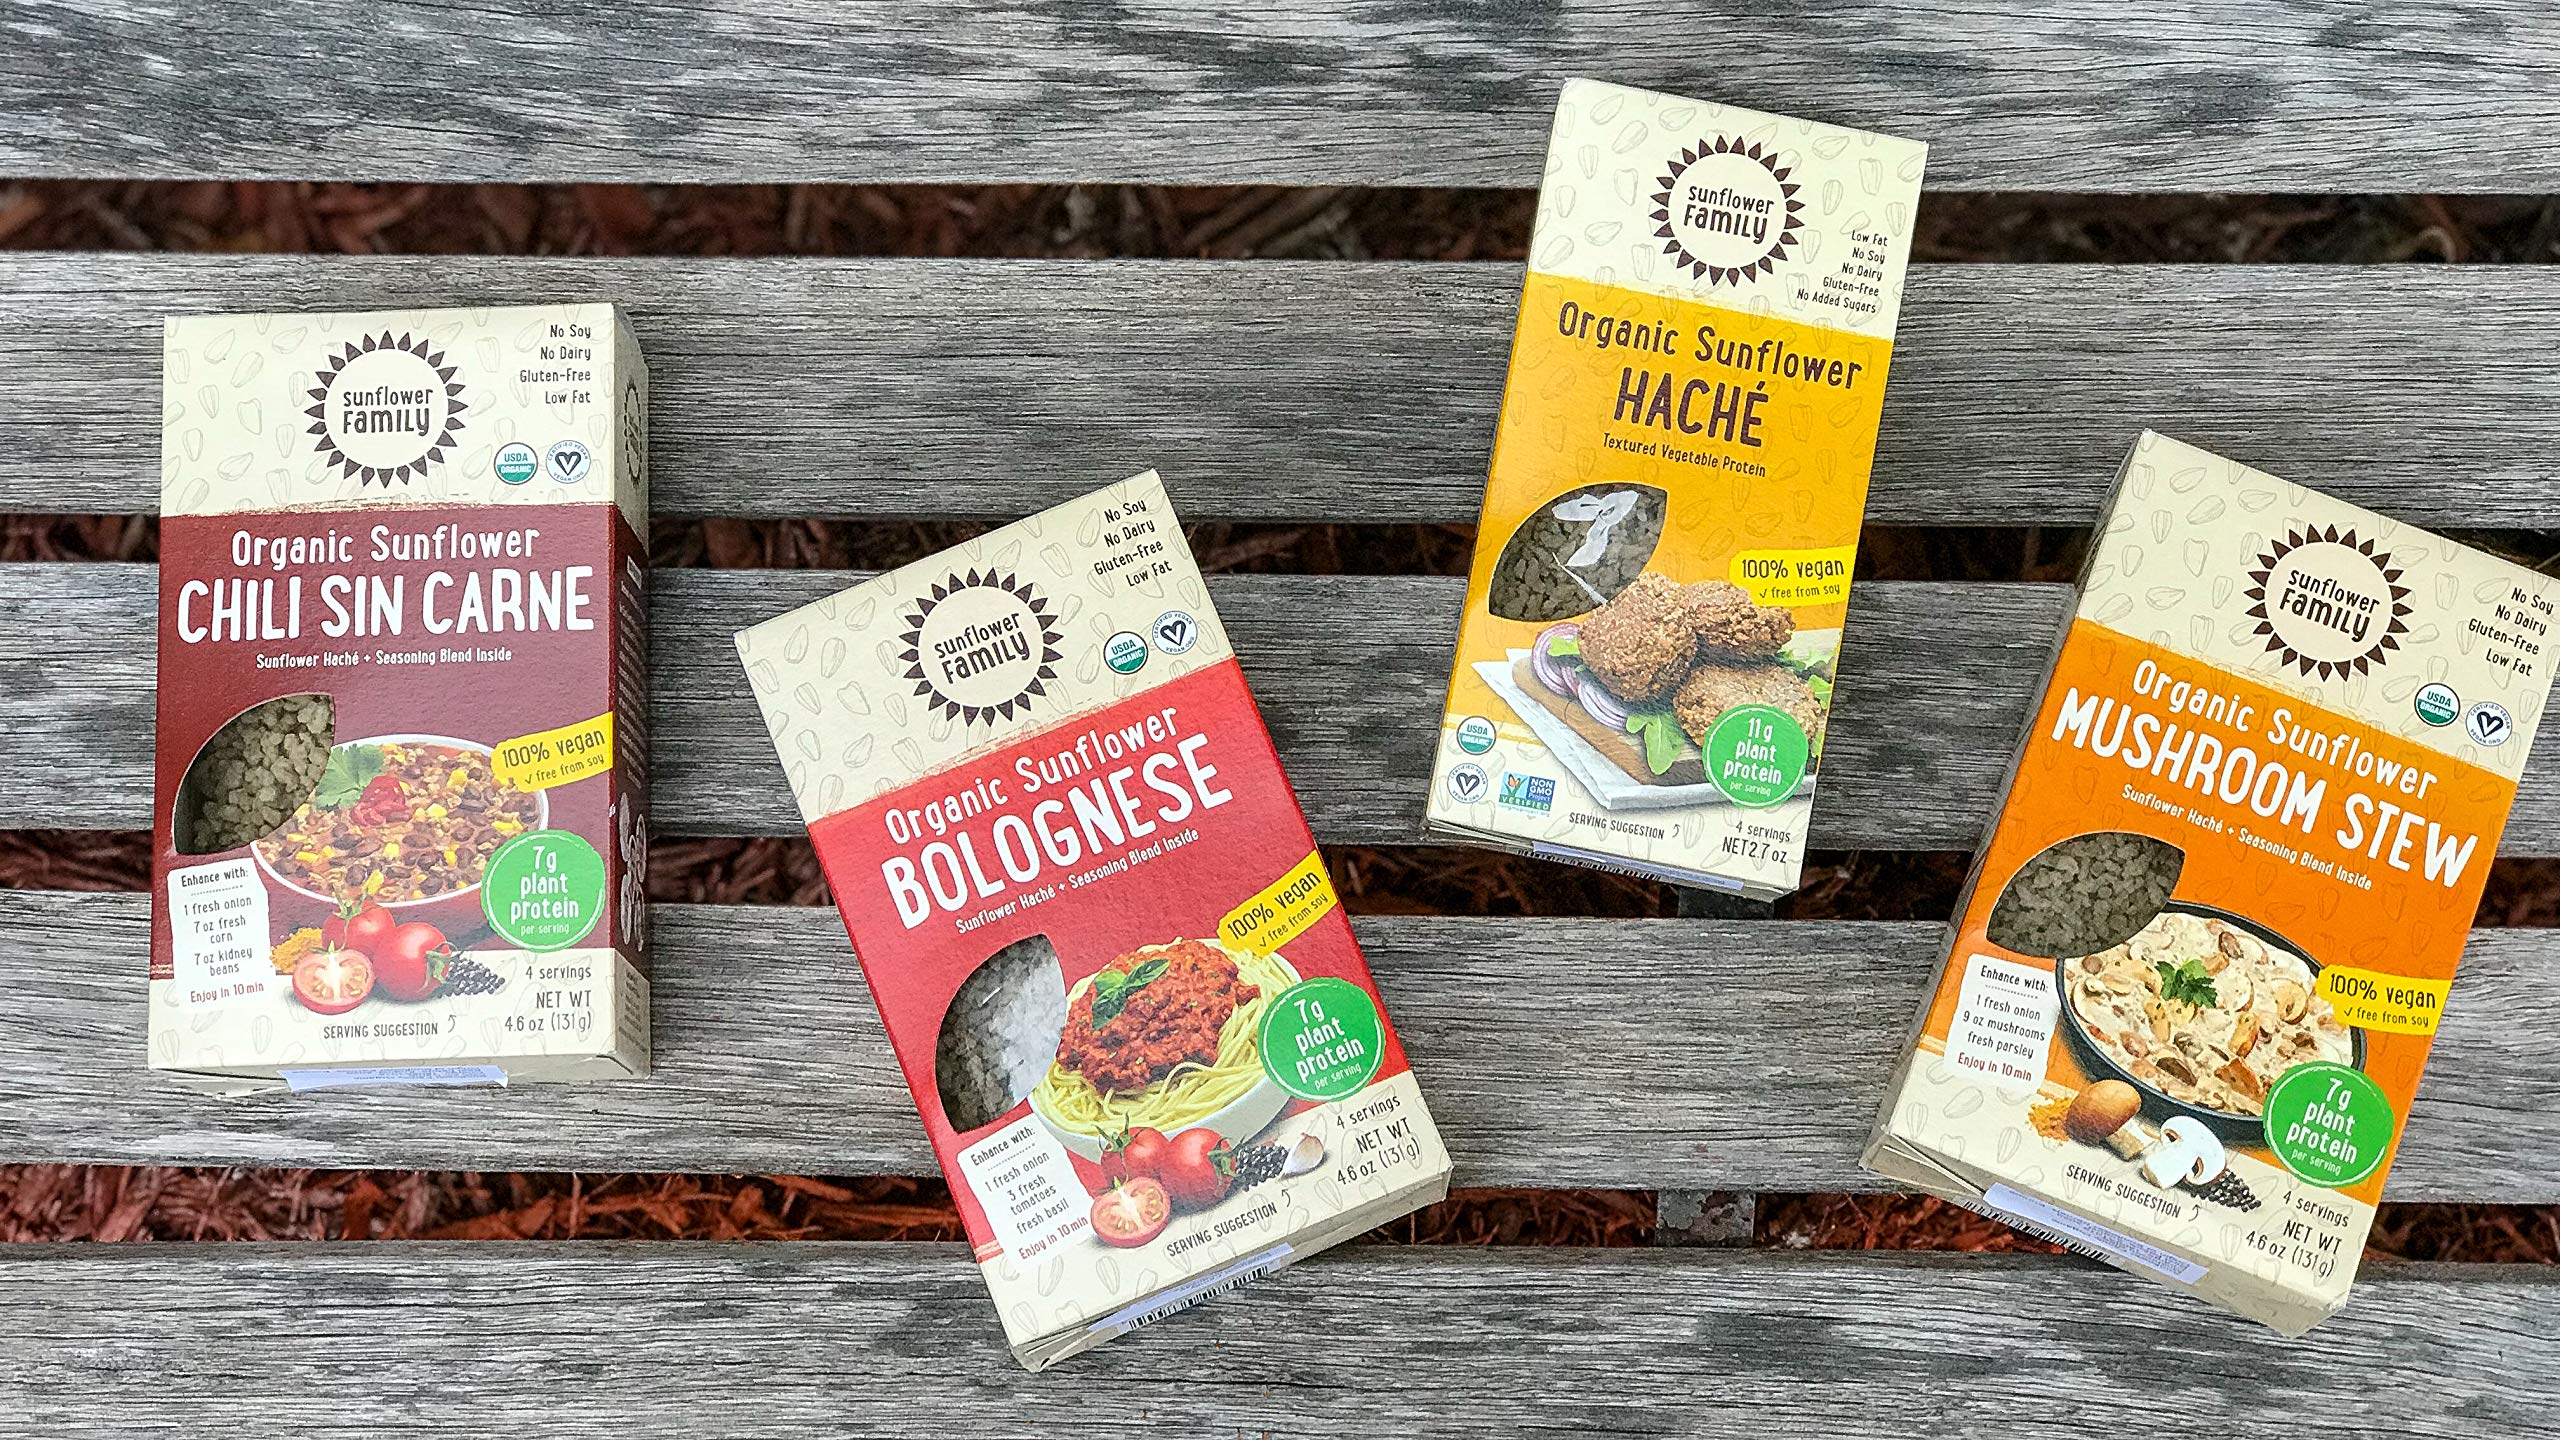 SunflowerFamily Variety Pack - Certified USDA Organic Meat Substitute From Textured Sunflower Protein - Soy, Dairy & Gluten Free by SunflowerFamily (Image #2)